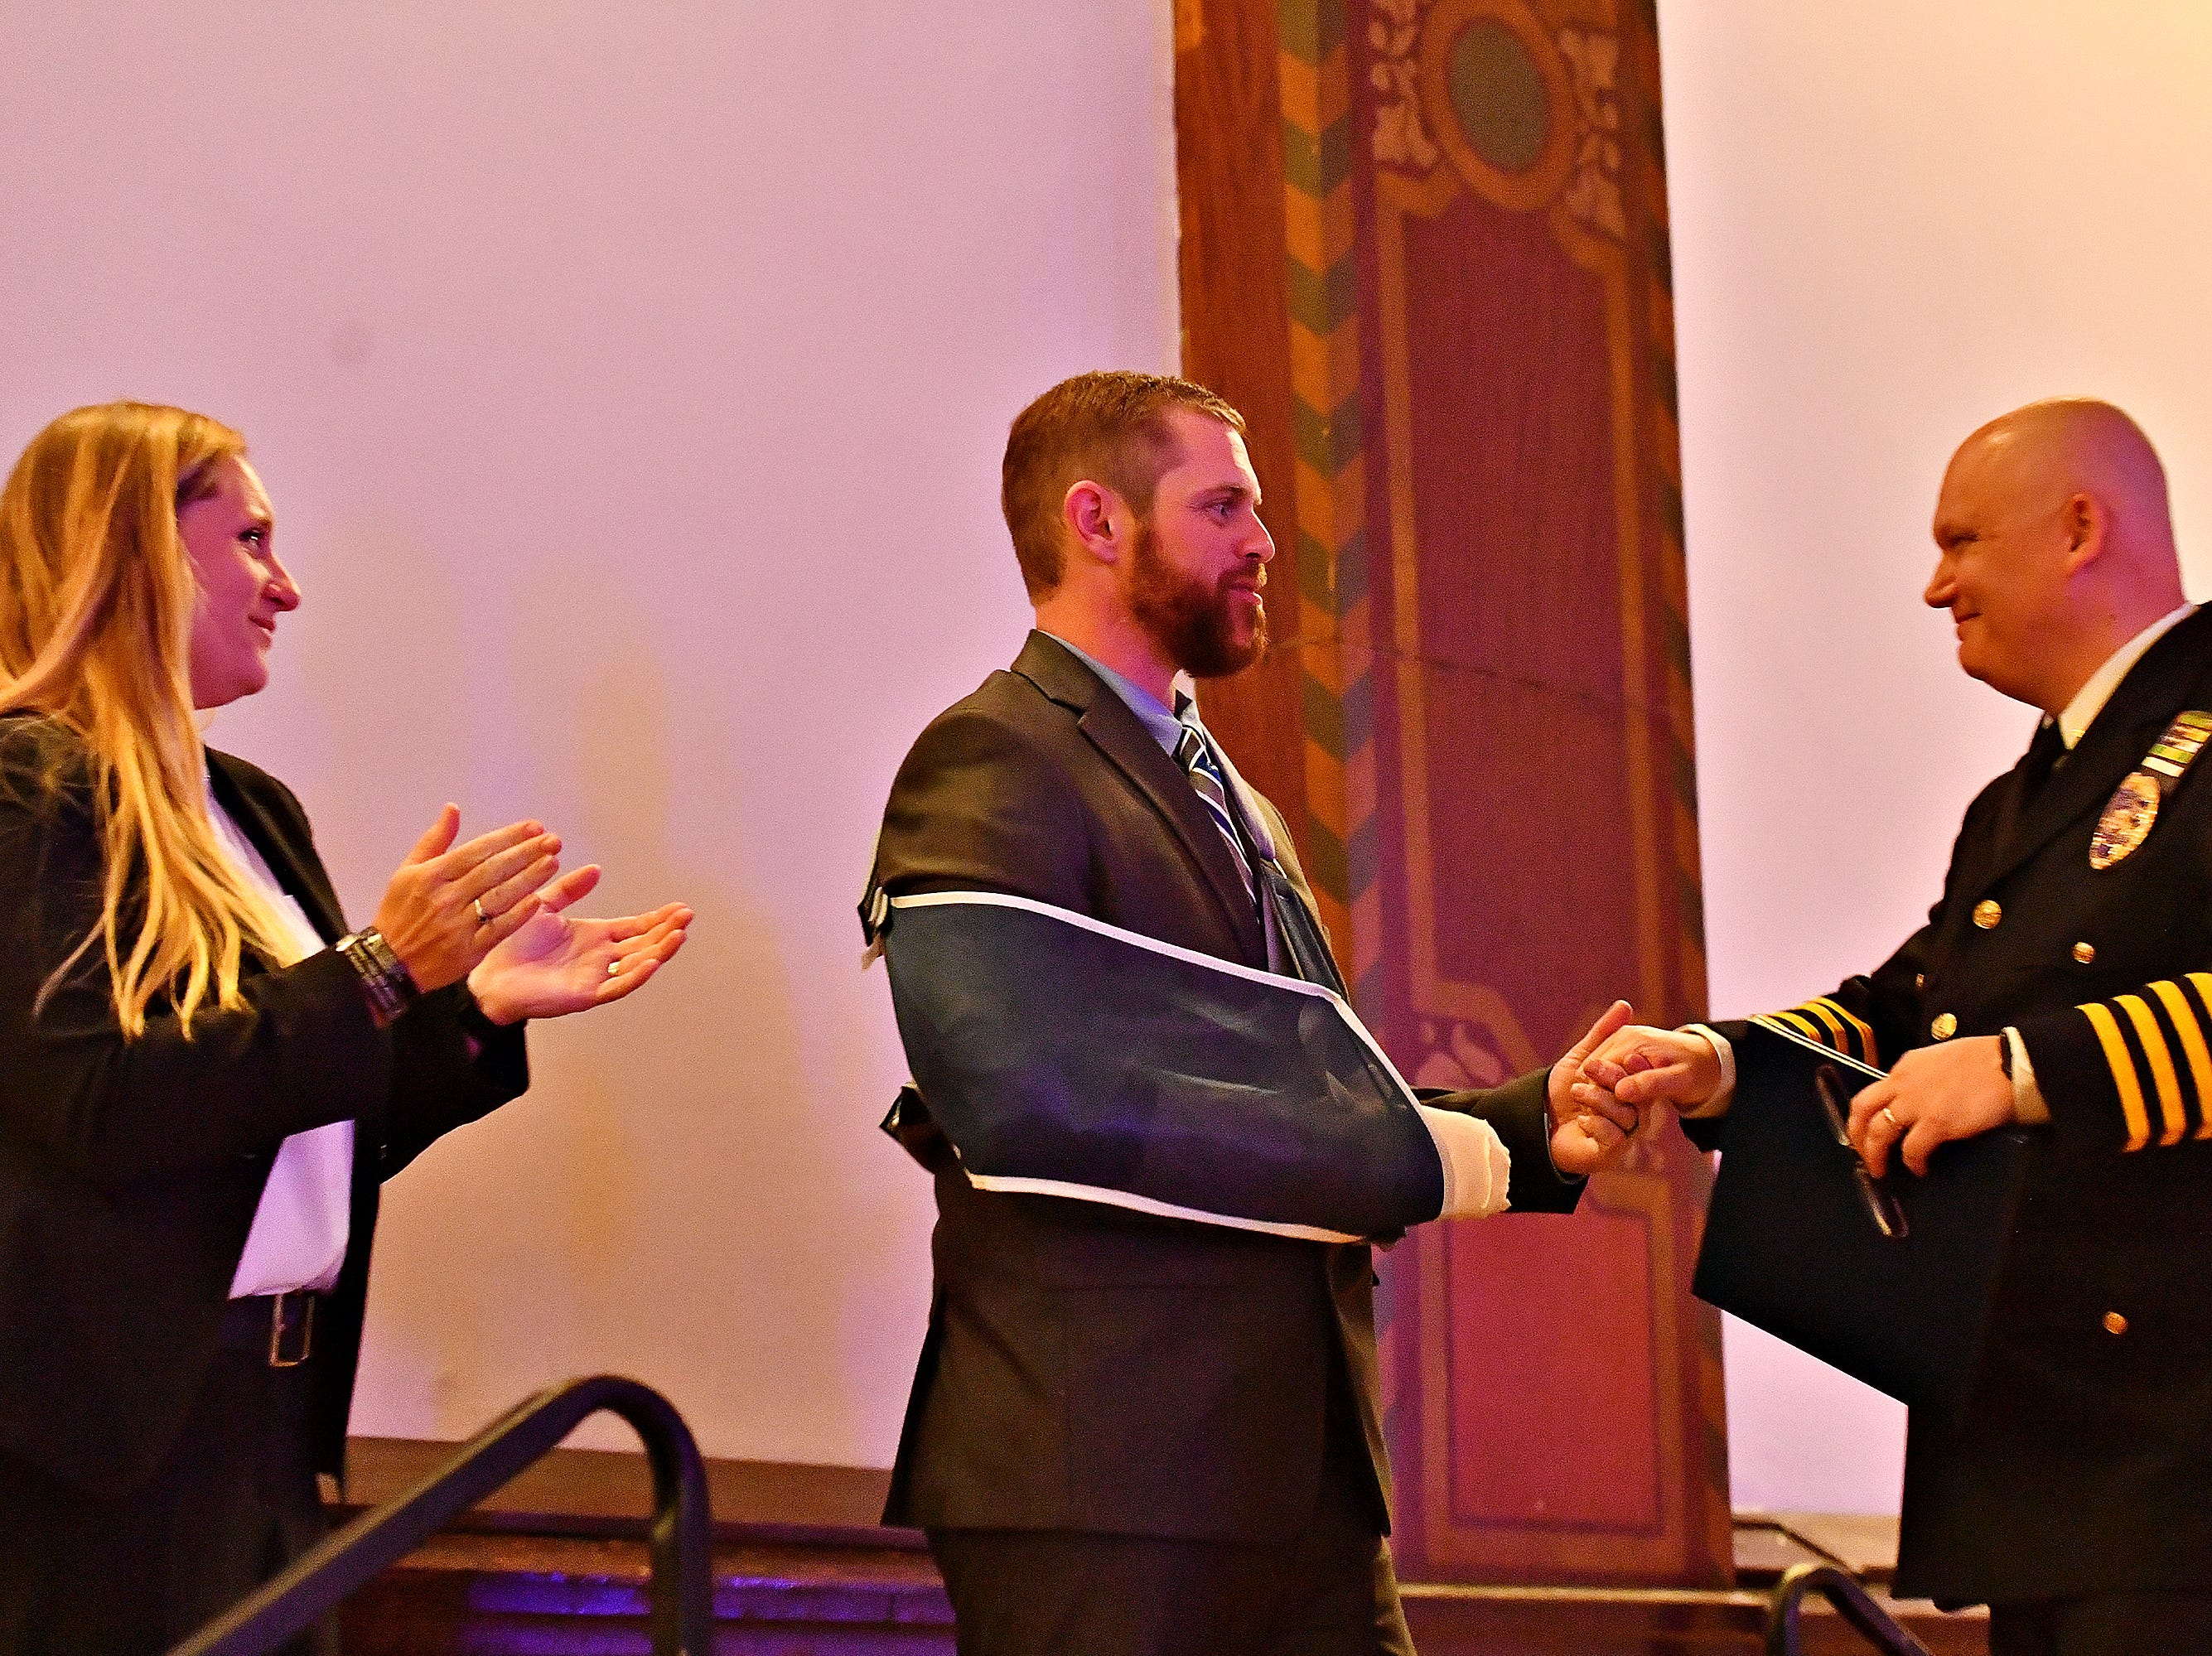 """From left, York City Det. Tiffany Pitts looks on as her husband, Police Officer Kyle Pitts, is presented with the 2018 """"Police Officer of the Year"""" award by York City Police Chief Troy Bankert during the York City Police Departmental Awards Ceremony at Valencia Ballroom in York City, Thursday, May 9, 2019. Dawn J. Sagert photo"""